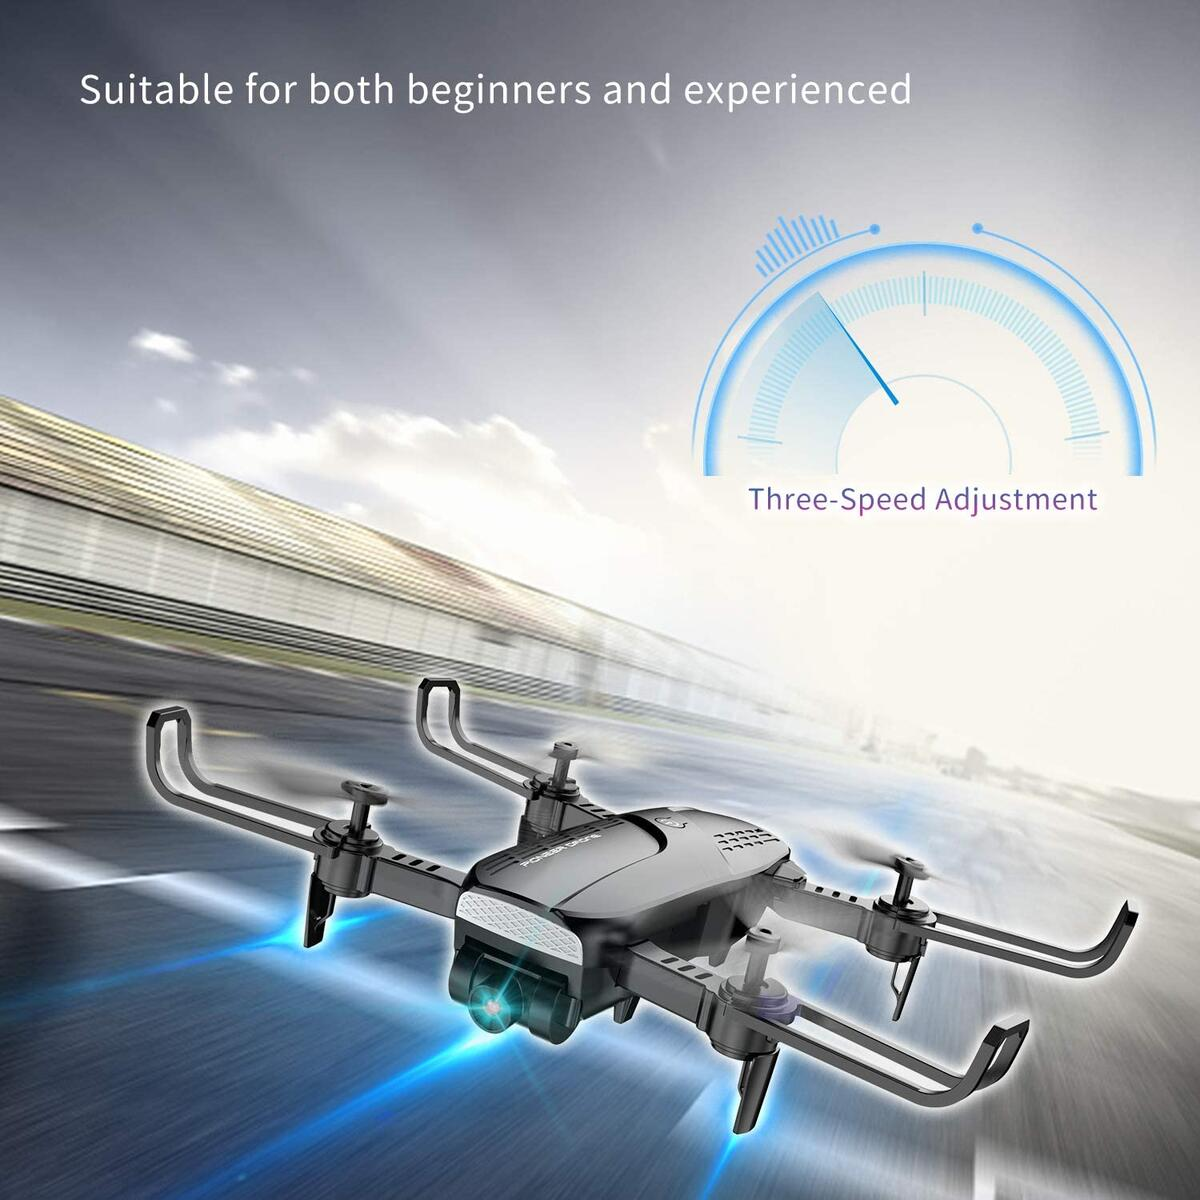 [50% OFF with 5% Coupon] Drones with Camera for Adults 720P HD - Foldable FPV WiFi RC Quadcopter, 120° Wide-Angle Live Video Camera, Altitude Hold, Easy to Fly for Beginners, 2 Batteries